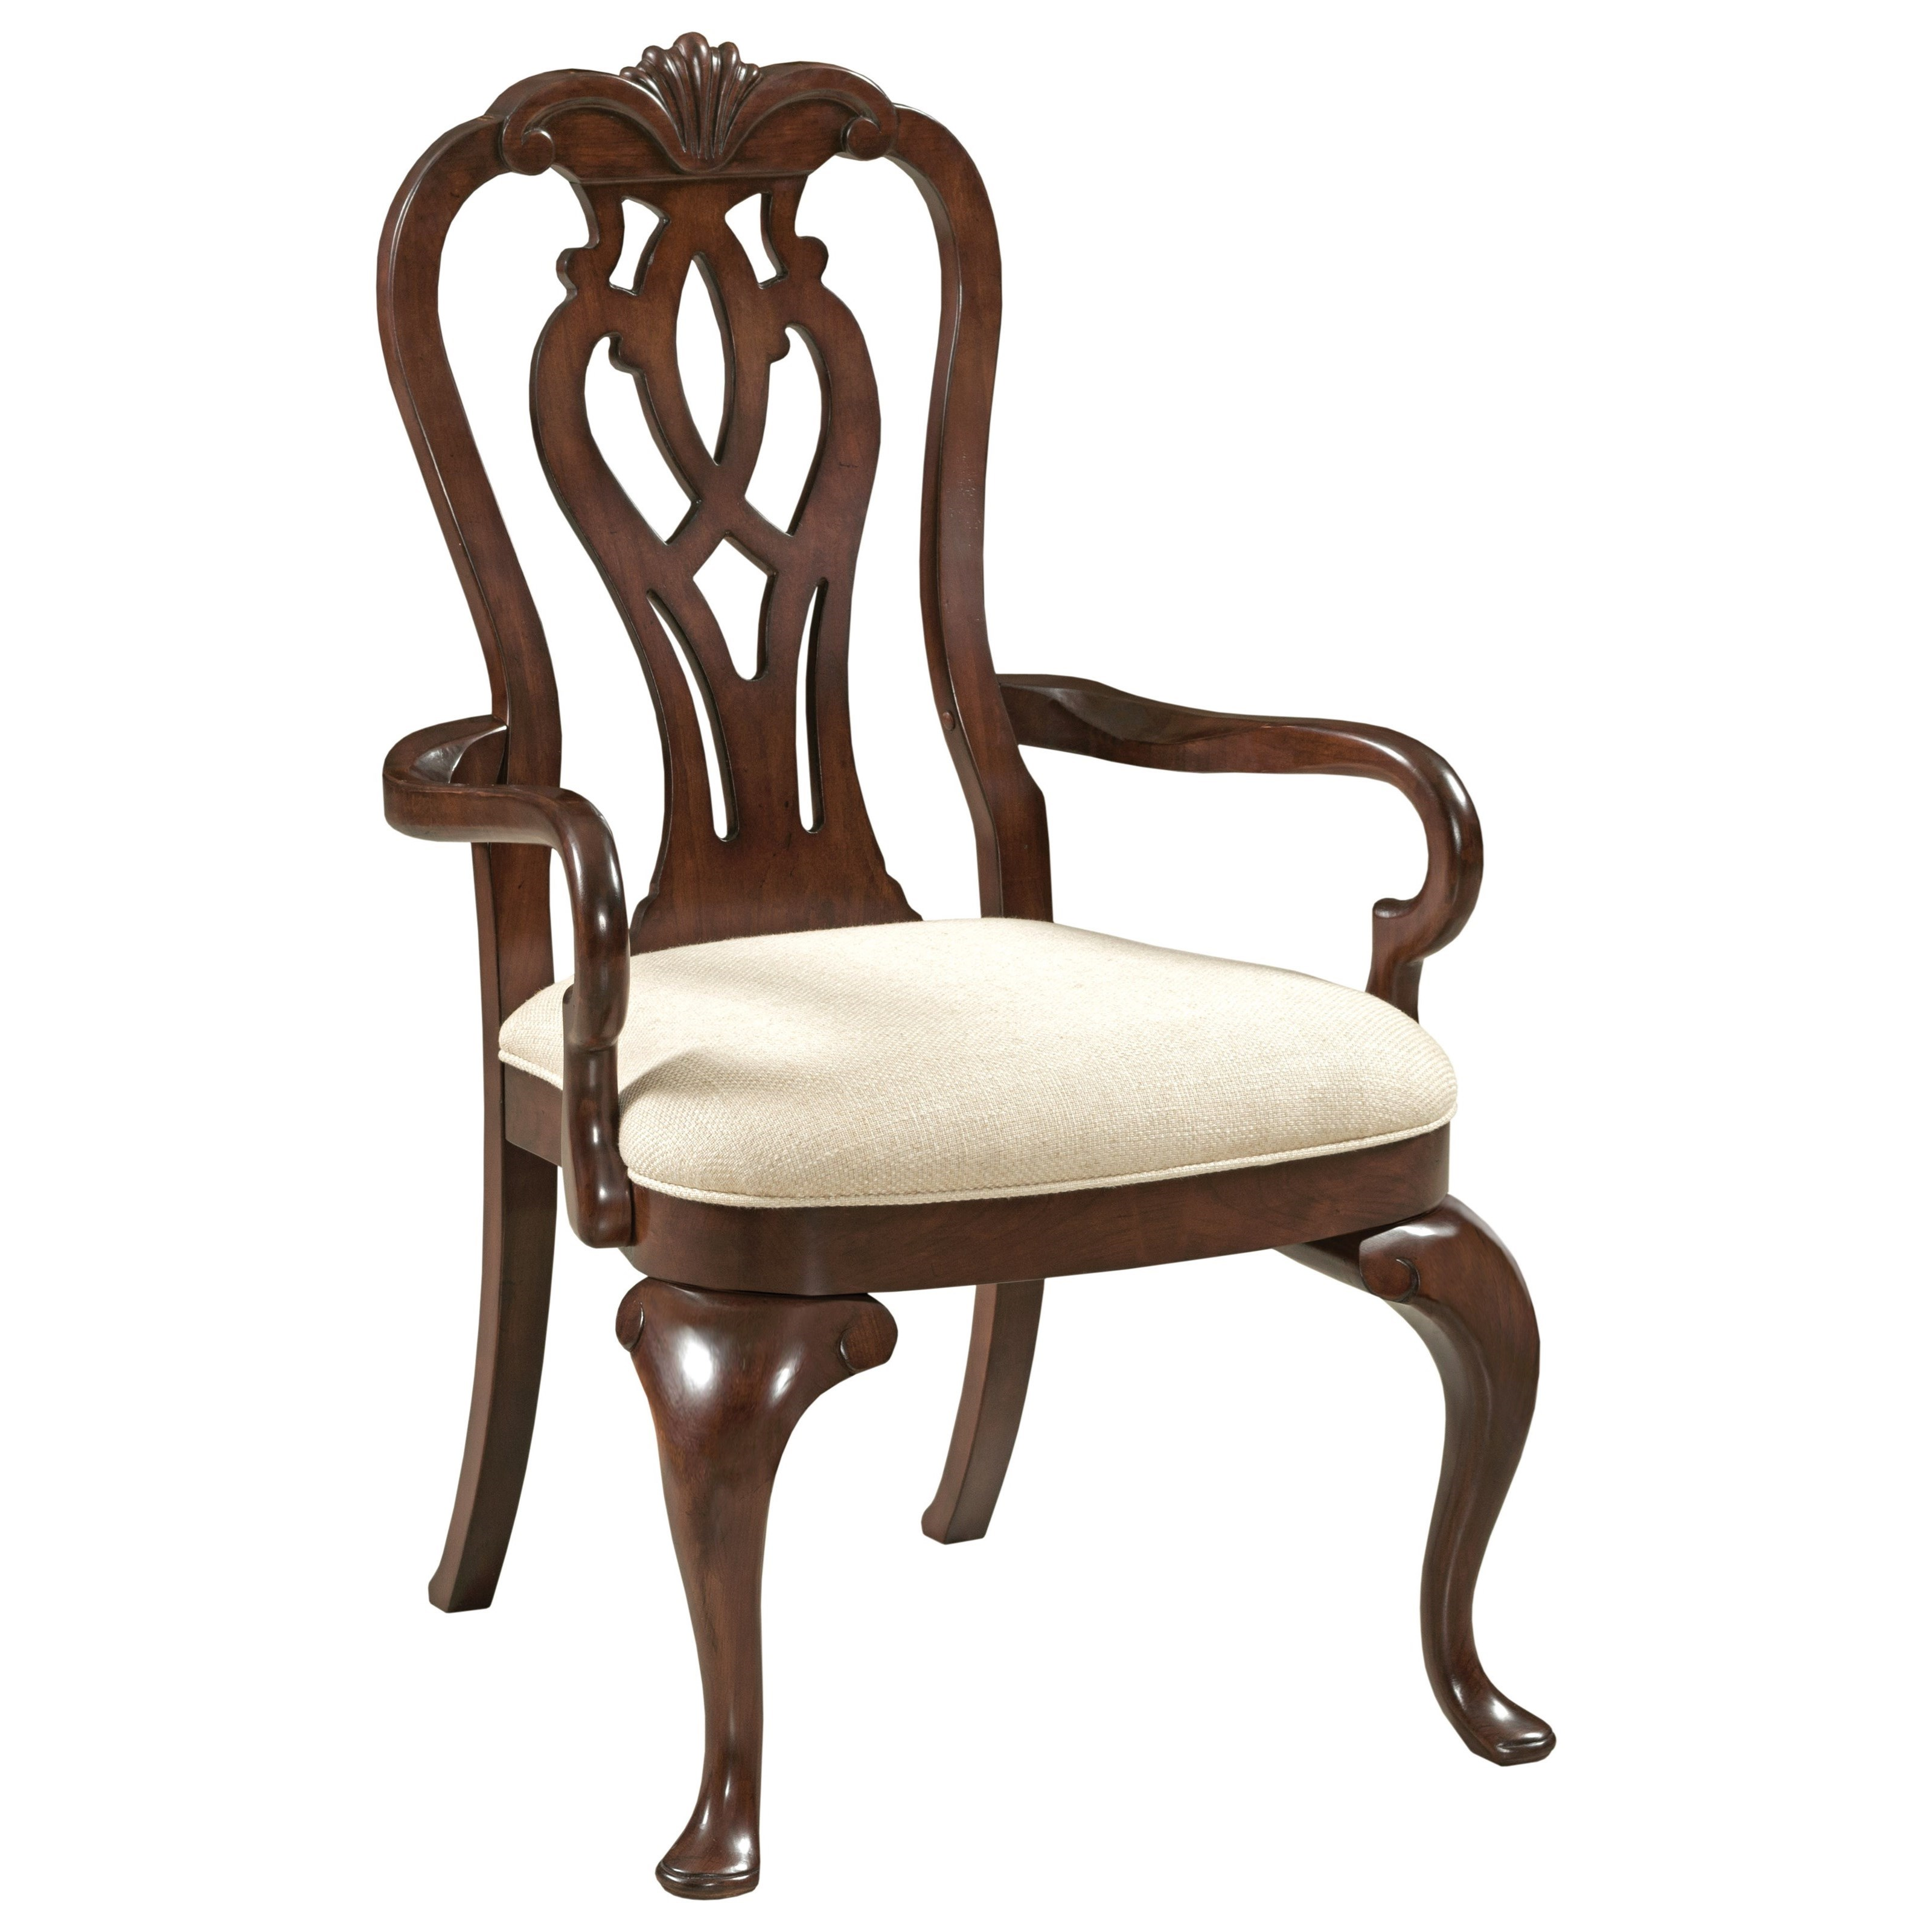 Kincaid furniture hadleigh 607 637 traditional queen anne for Queen anne furniture